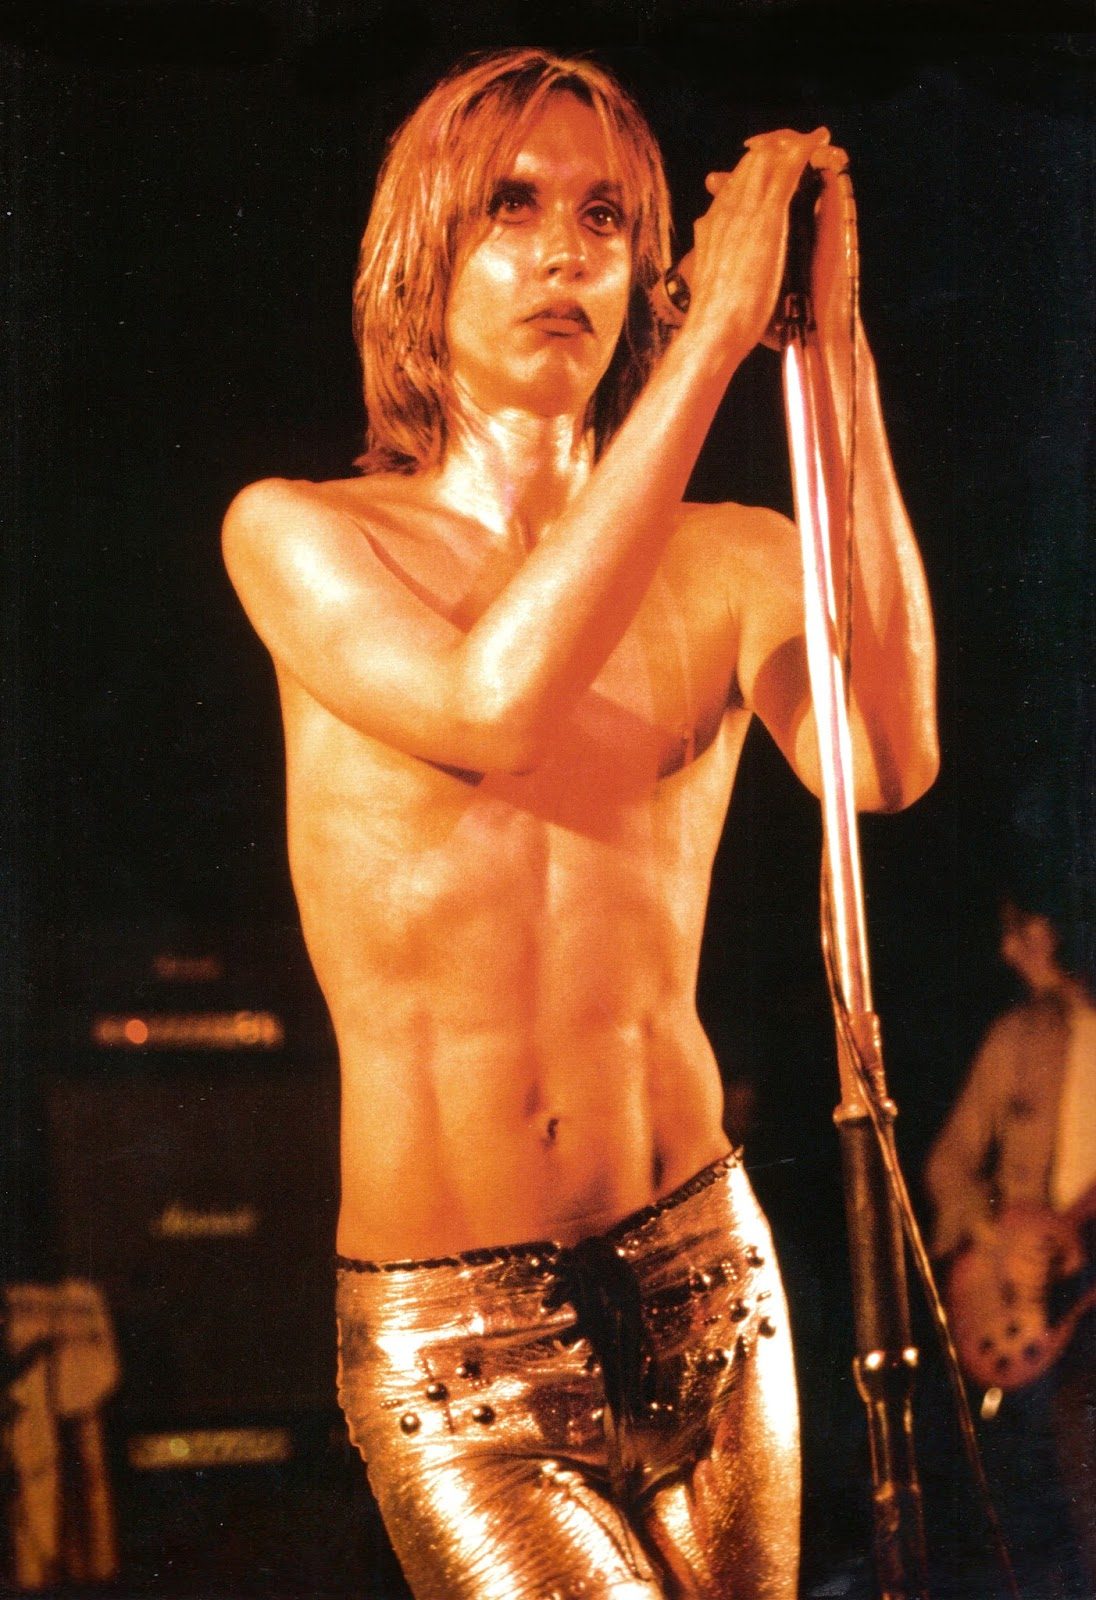 Iggy & The Stooges - Kings Cross Cinema, London, 7-15-72 (12).jpg